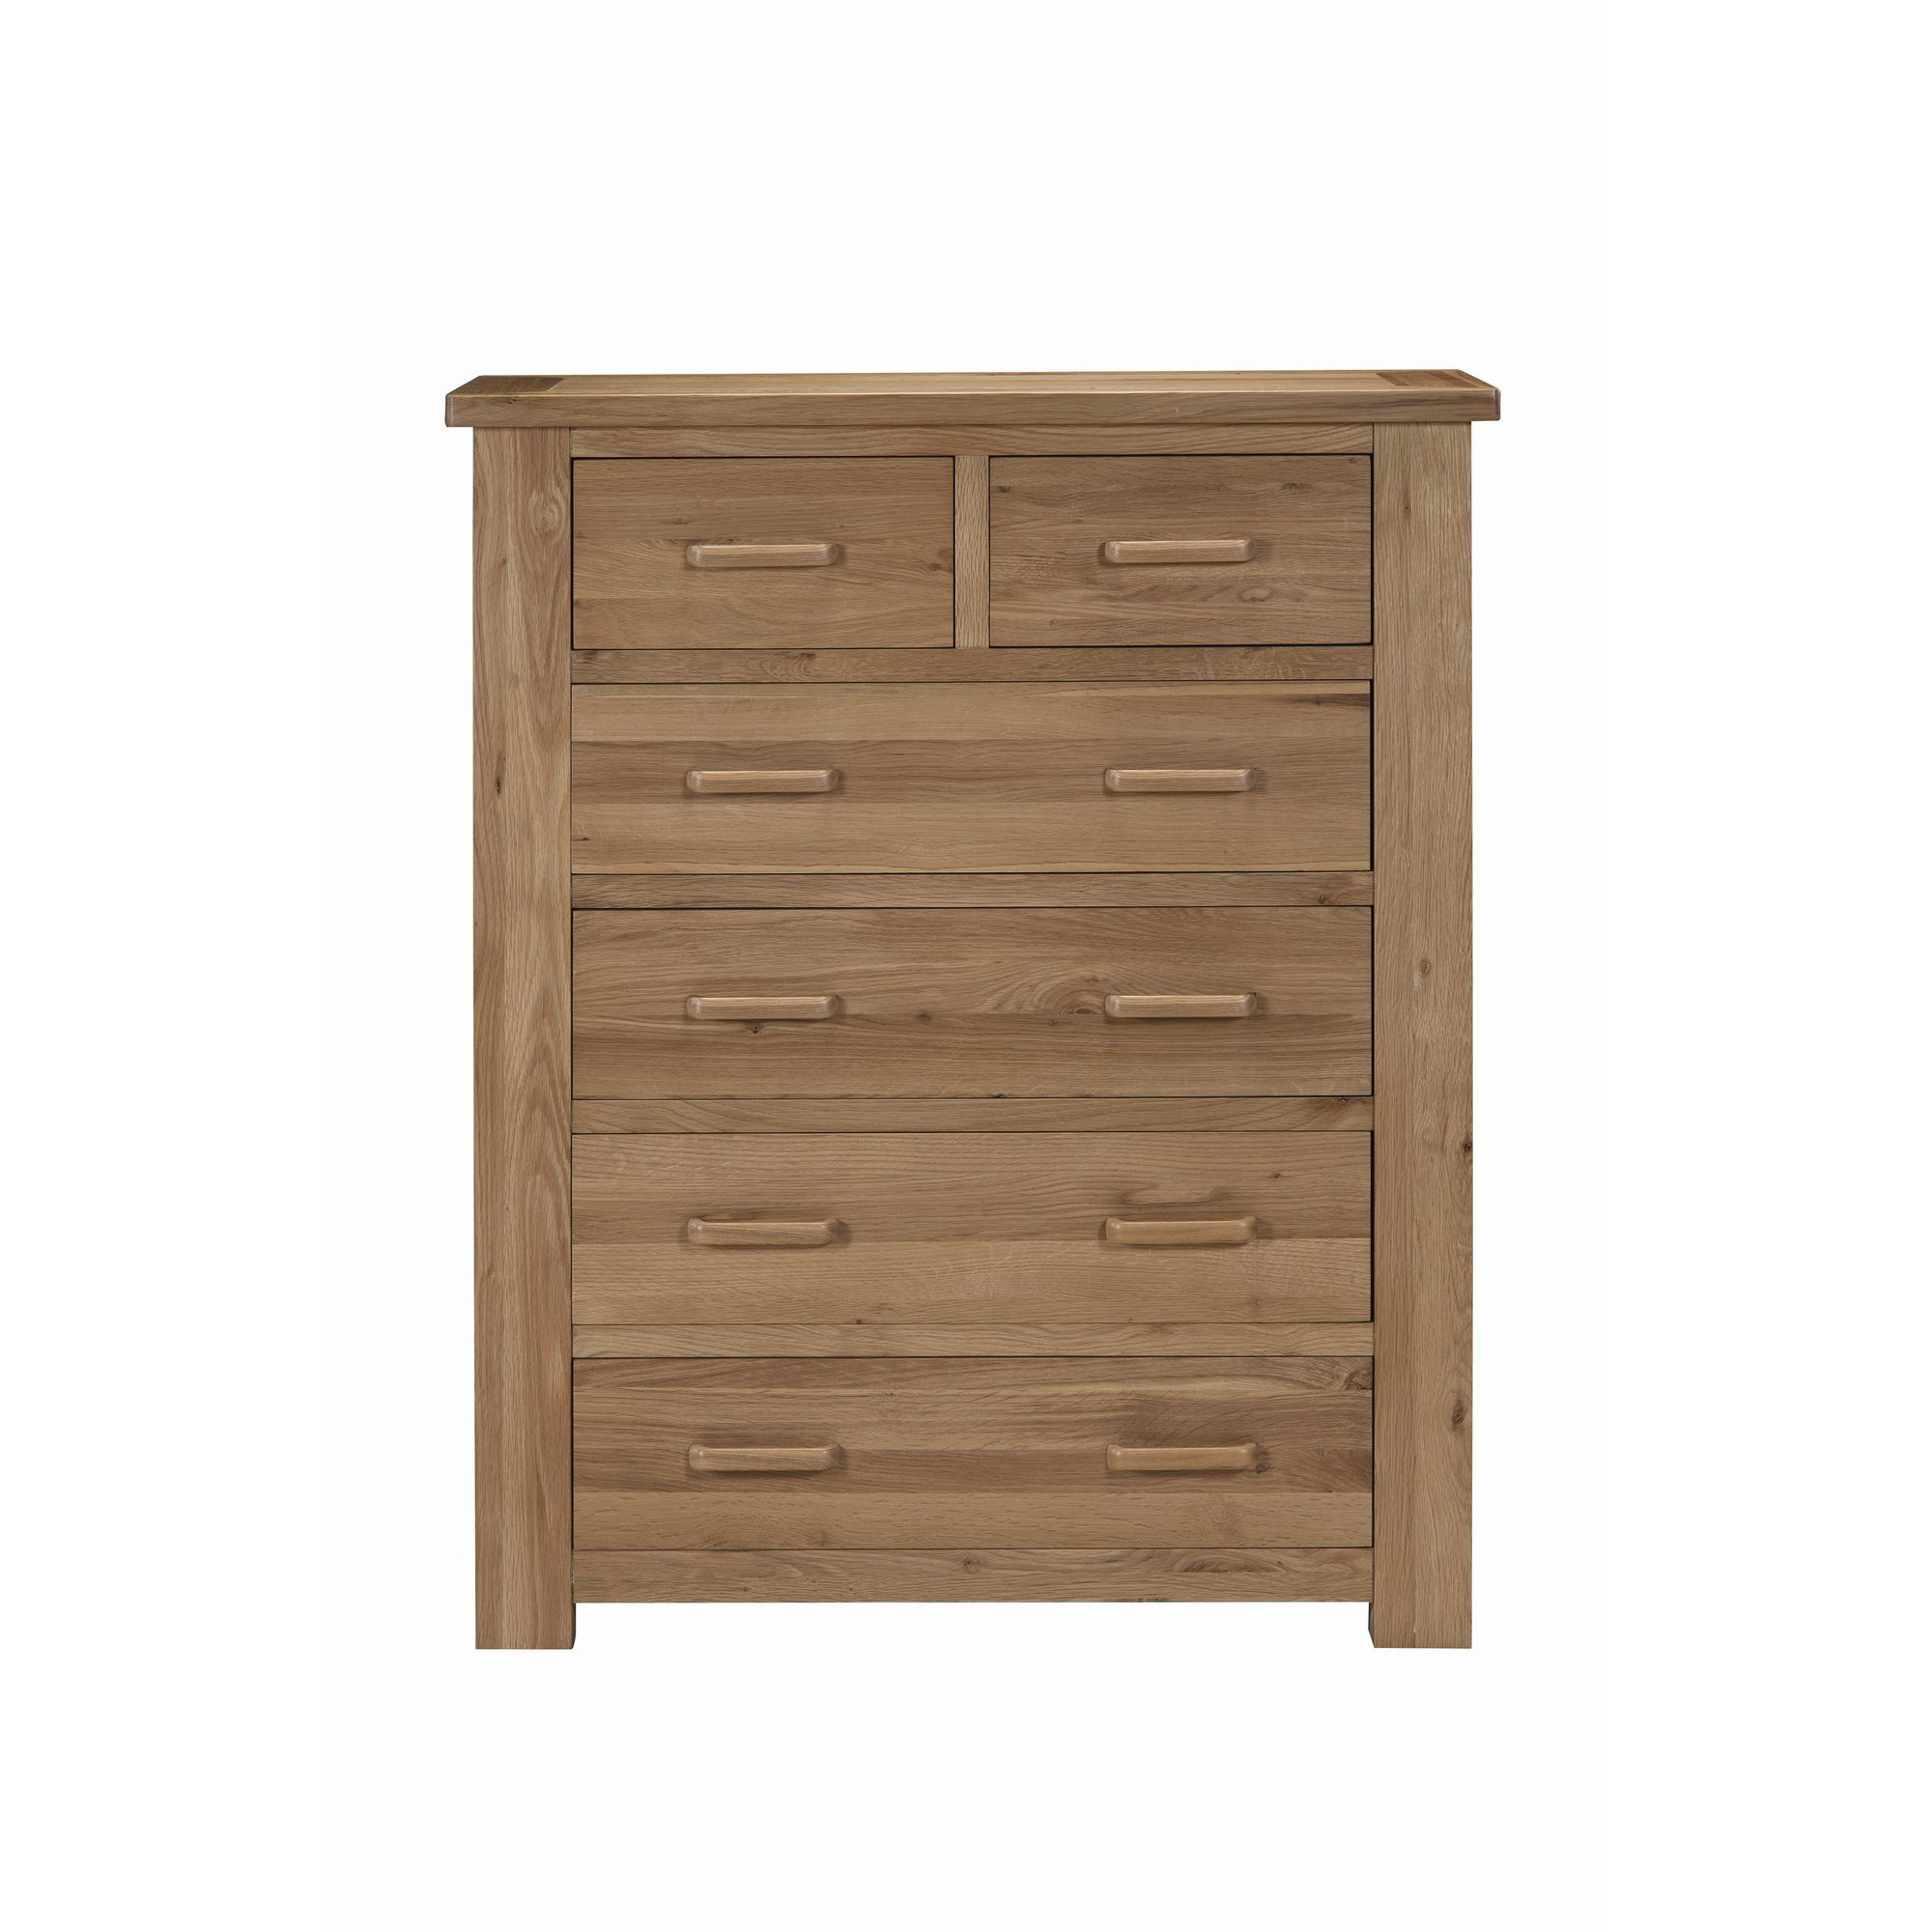 Alterton Furniture Wiltshire 2 Over 4 Drawer Chest at Tesco Direct